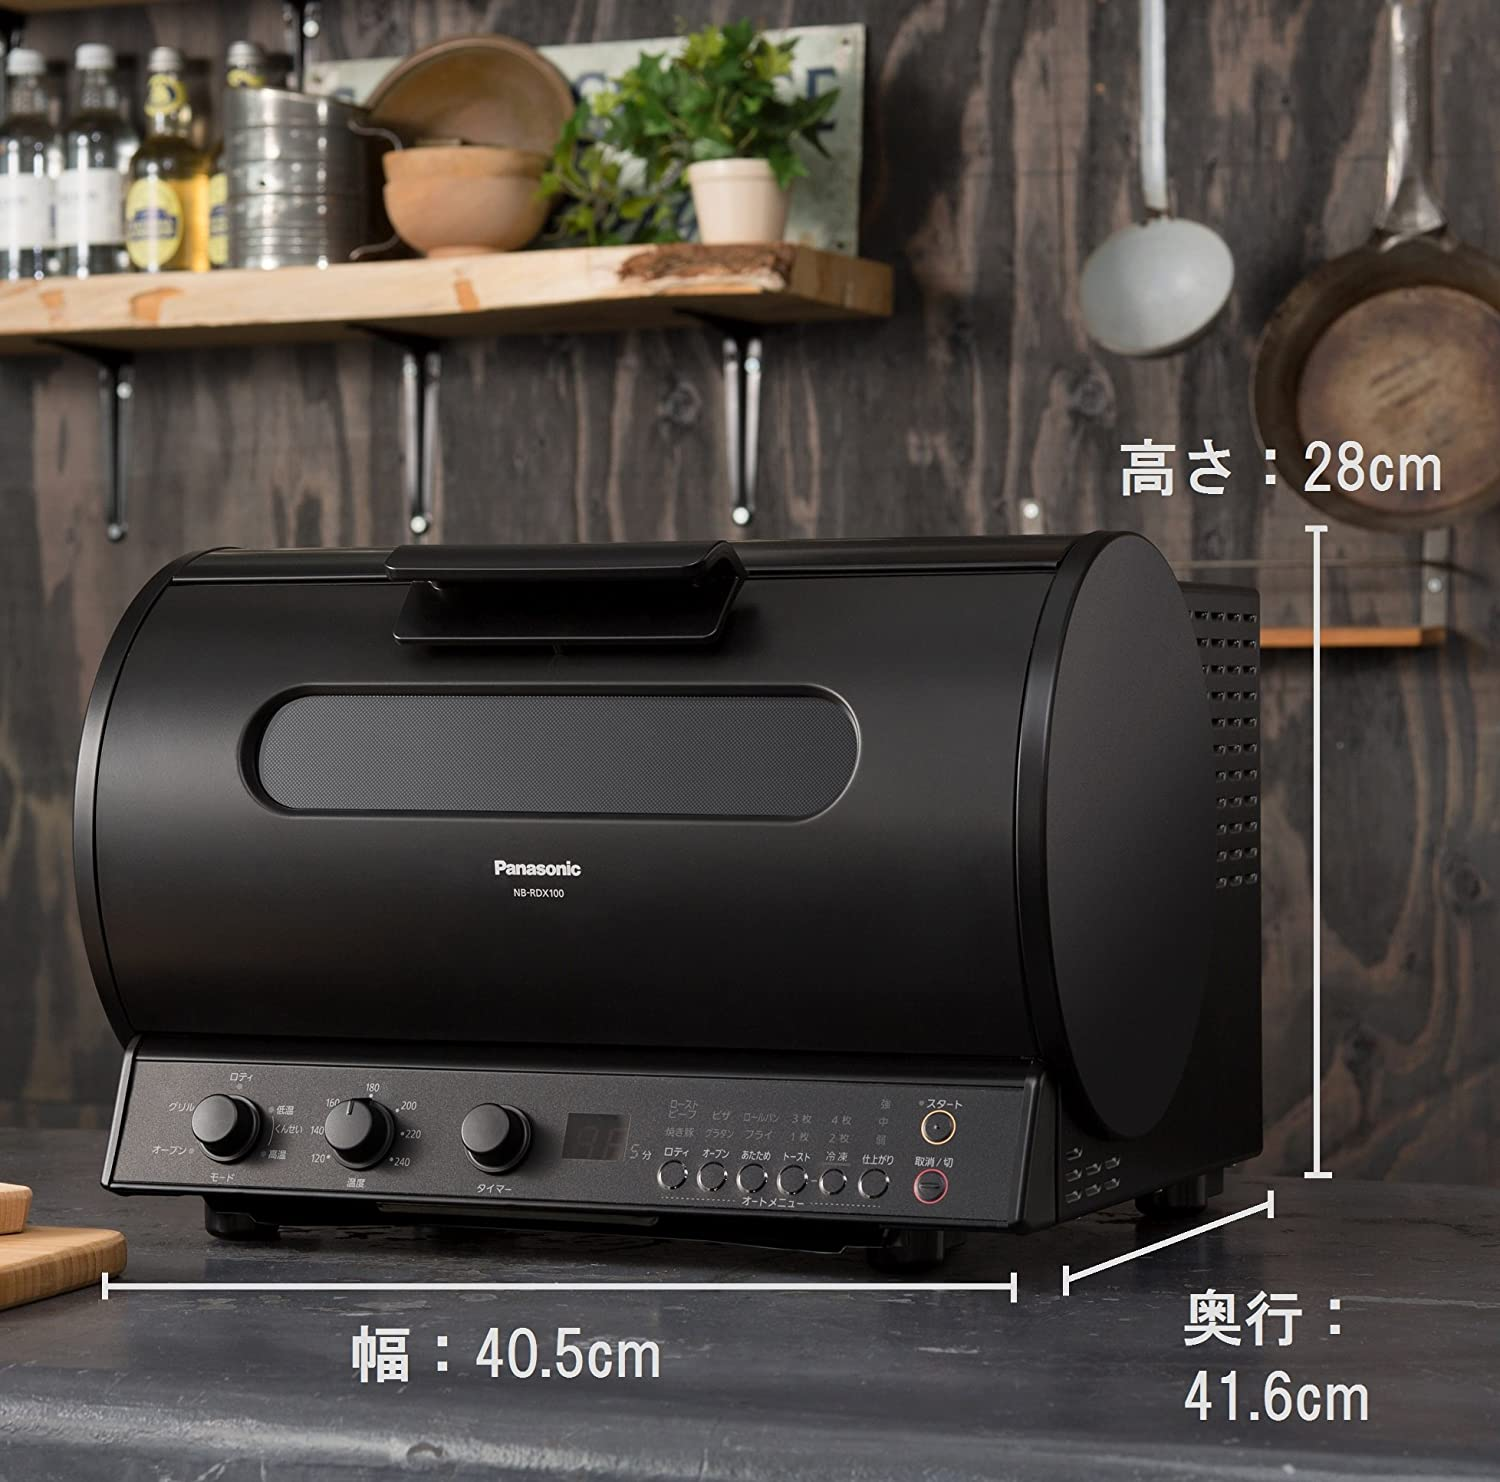 Amazon.com: Panasonic Rotisserie Grill & Smoke NB-RDX100-K (Black)【Japan Domestic genuine products】: Kitchen & Dining